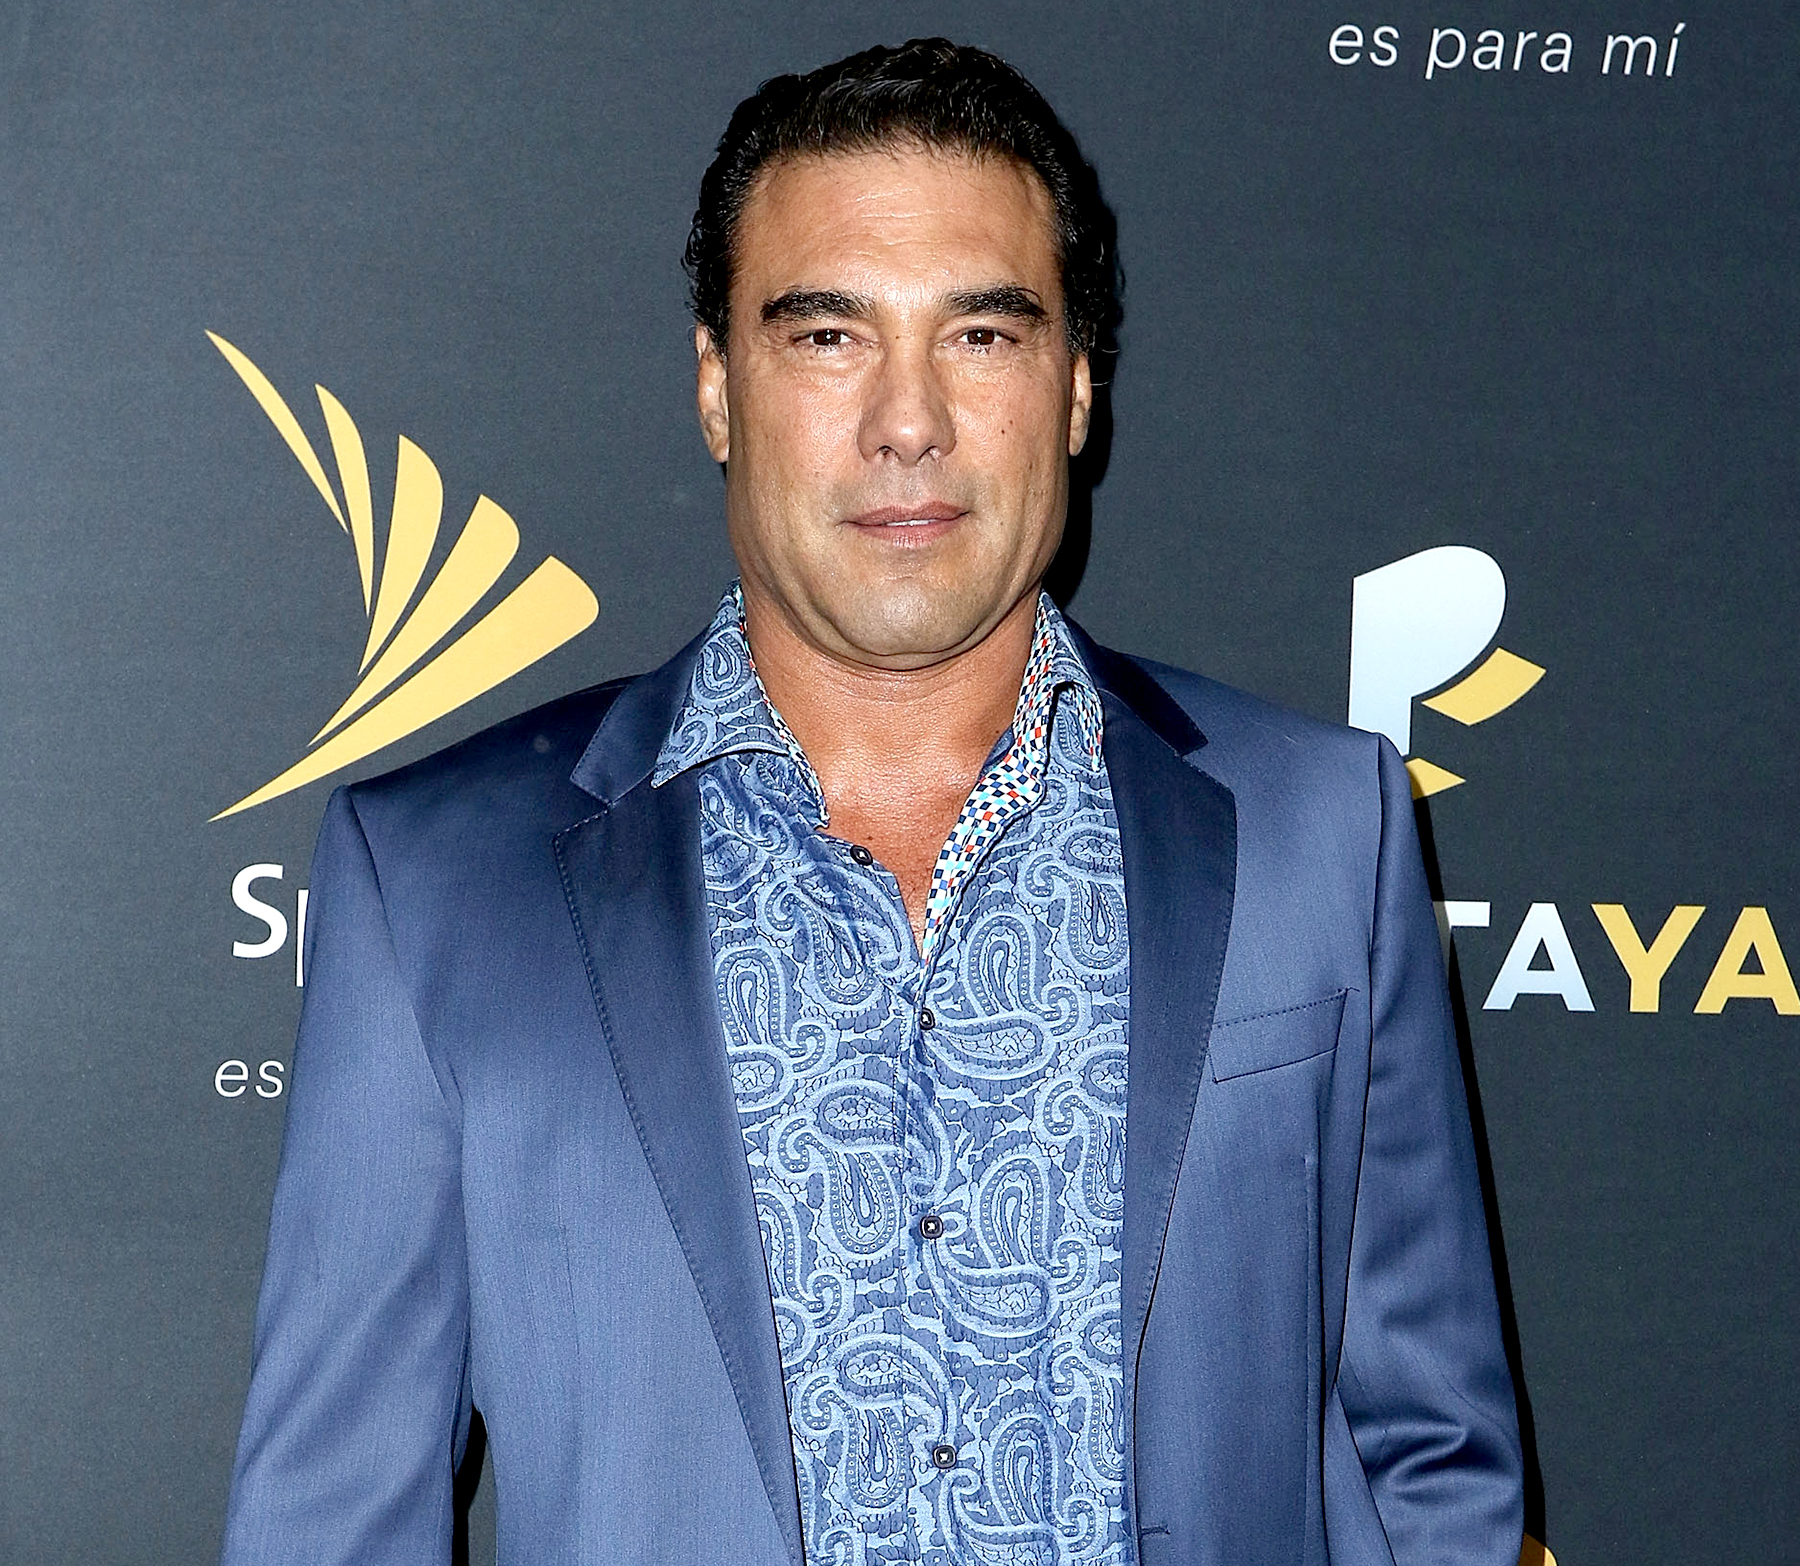 Eduardo Yáñez attends the PANTAYA launch party at Boulevard3 in Los Angeles on October 10, 2017.